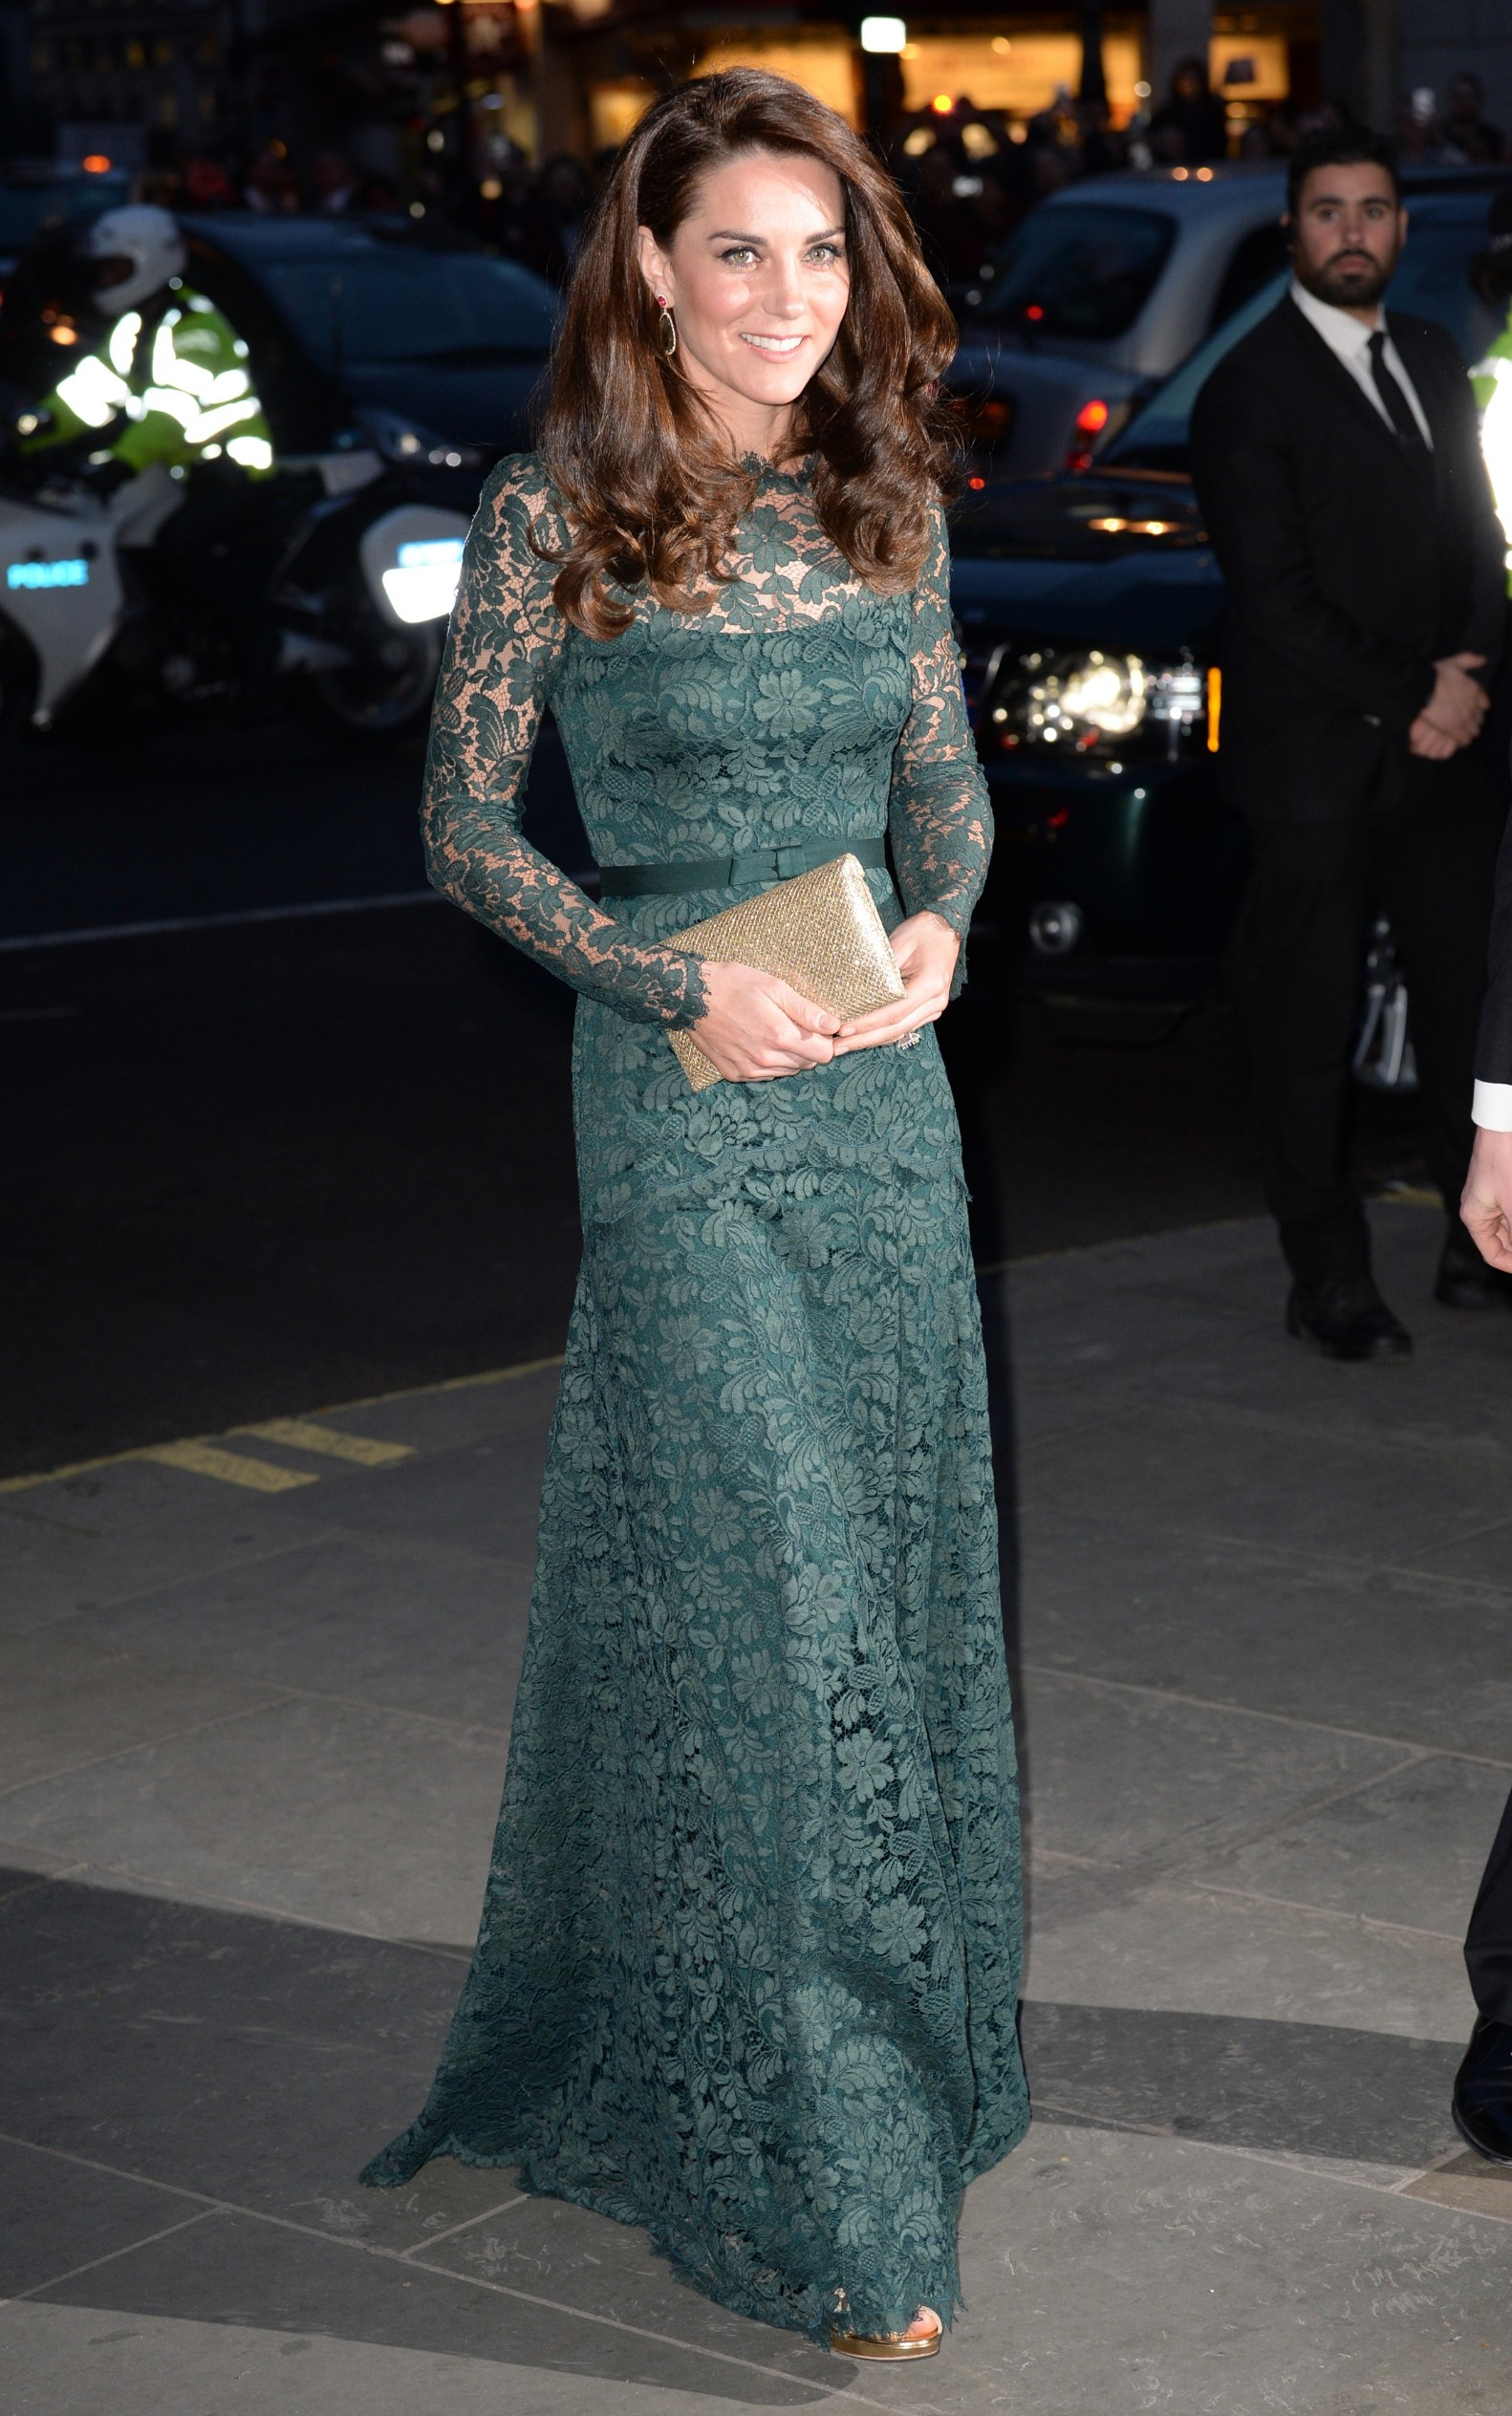 Catherine, Duchess of Cambridge arrives at the National Portrait Gallery for The Portrait Gala 2017 fundraiser, London., Image: 326862458, License: Rights-managed, Restrictions: , Model Release: no, Credit line: Profimedia, Press Association